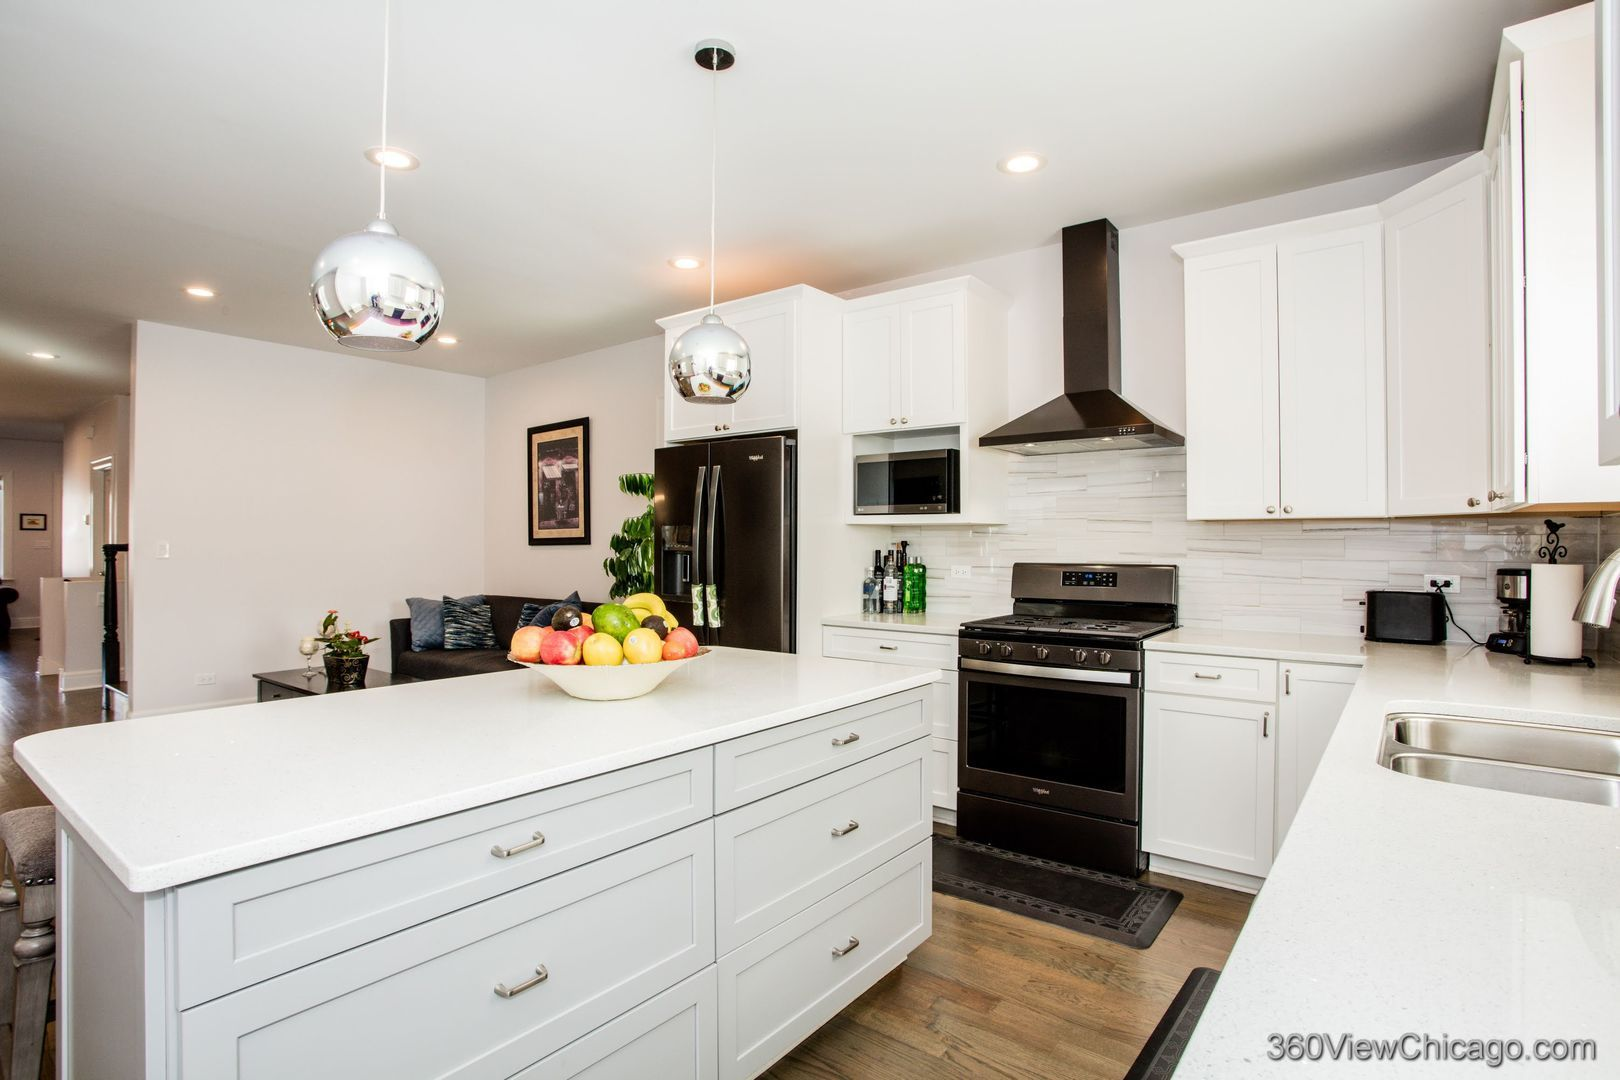 Photo 14: Photos: 1733 Troy Street in Chicago: CHI - Humboldt Park Residential for sale ()  : MLS®# 10911567